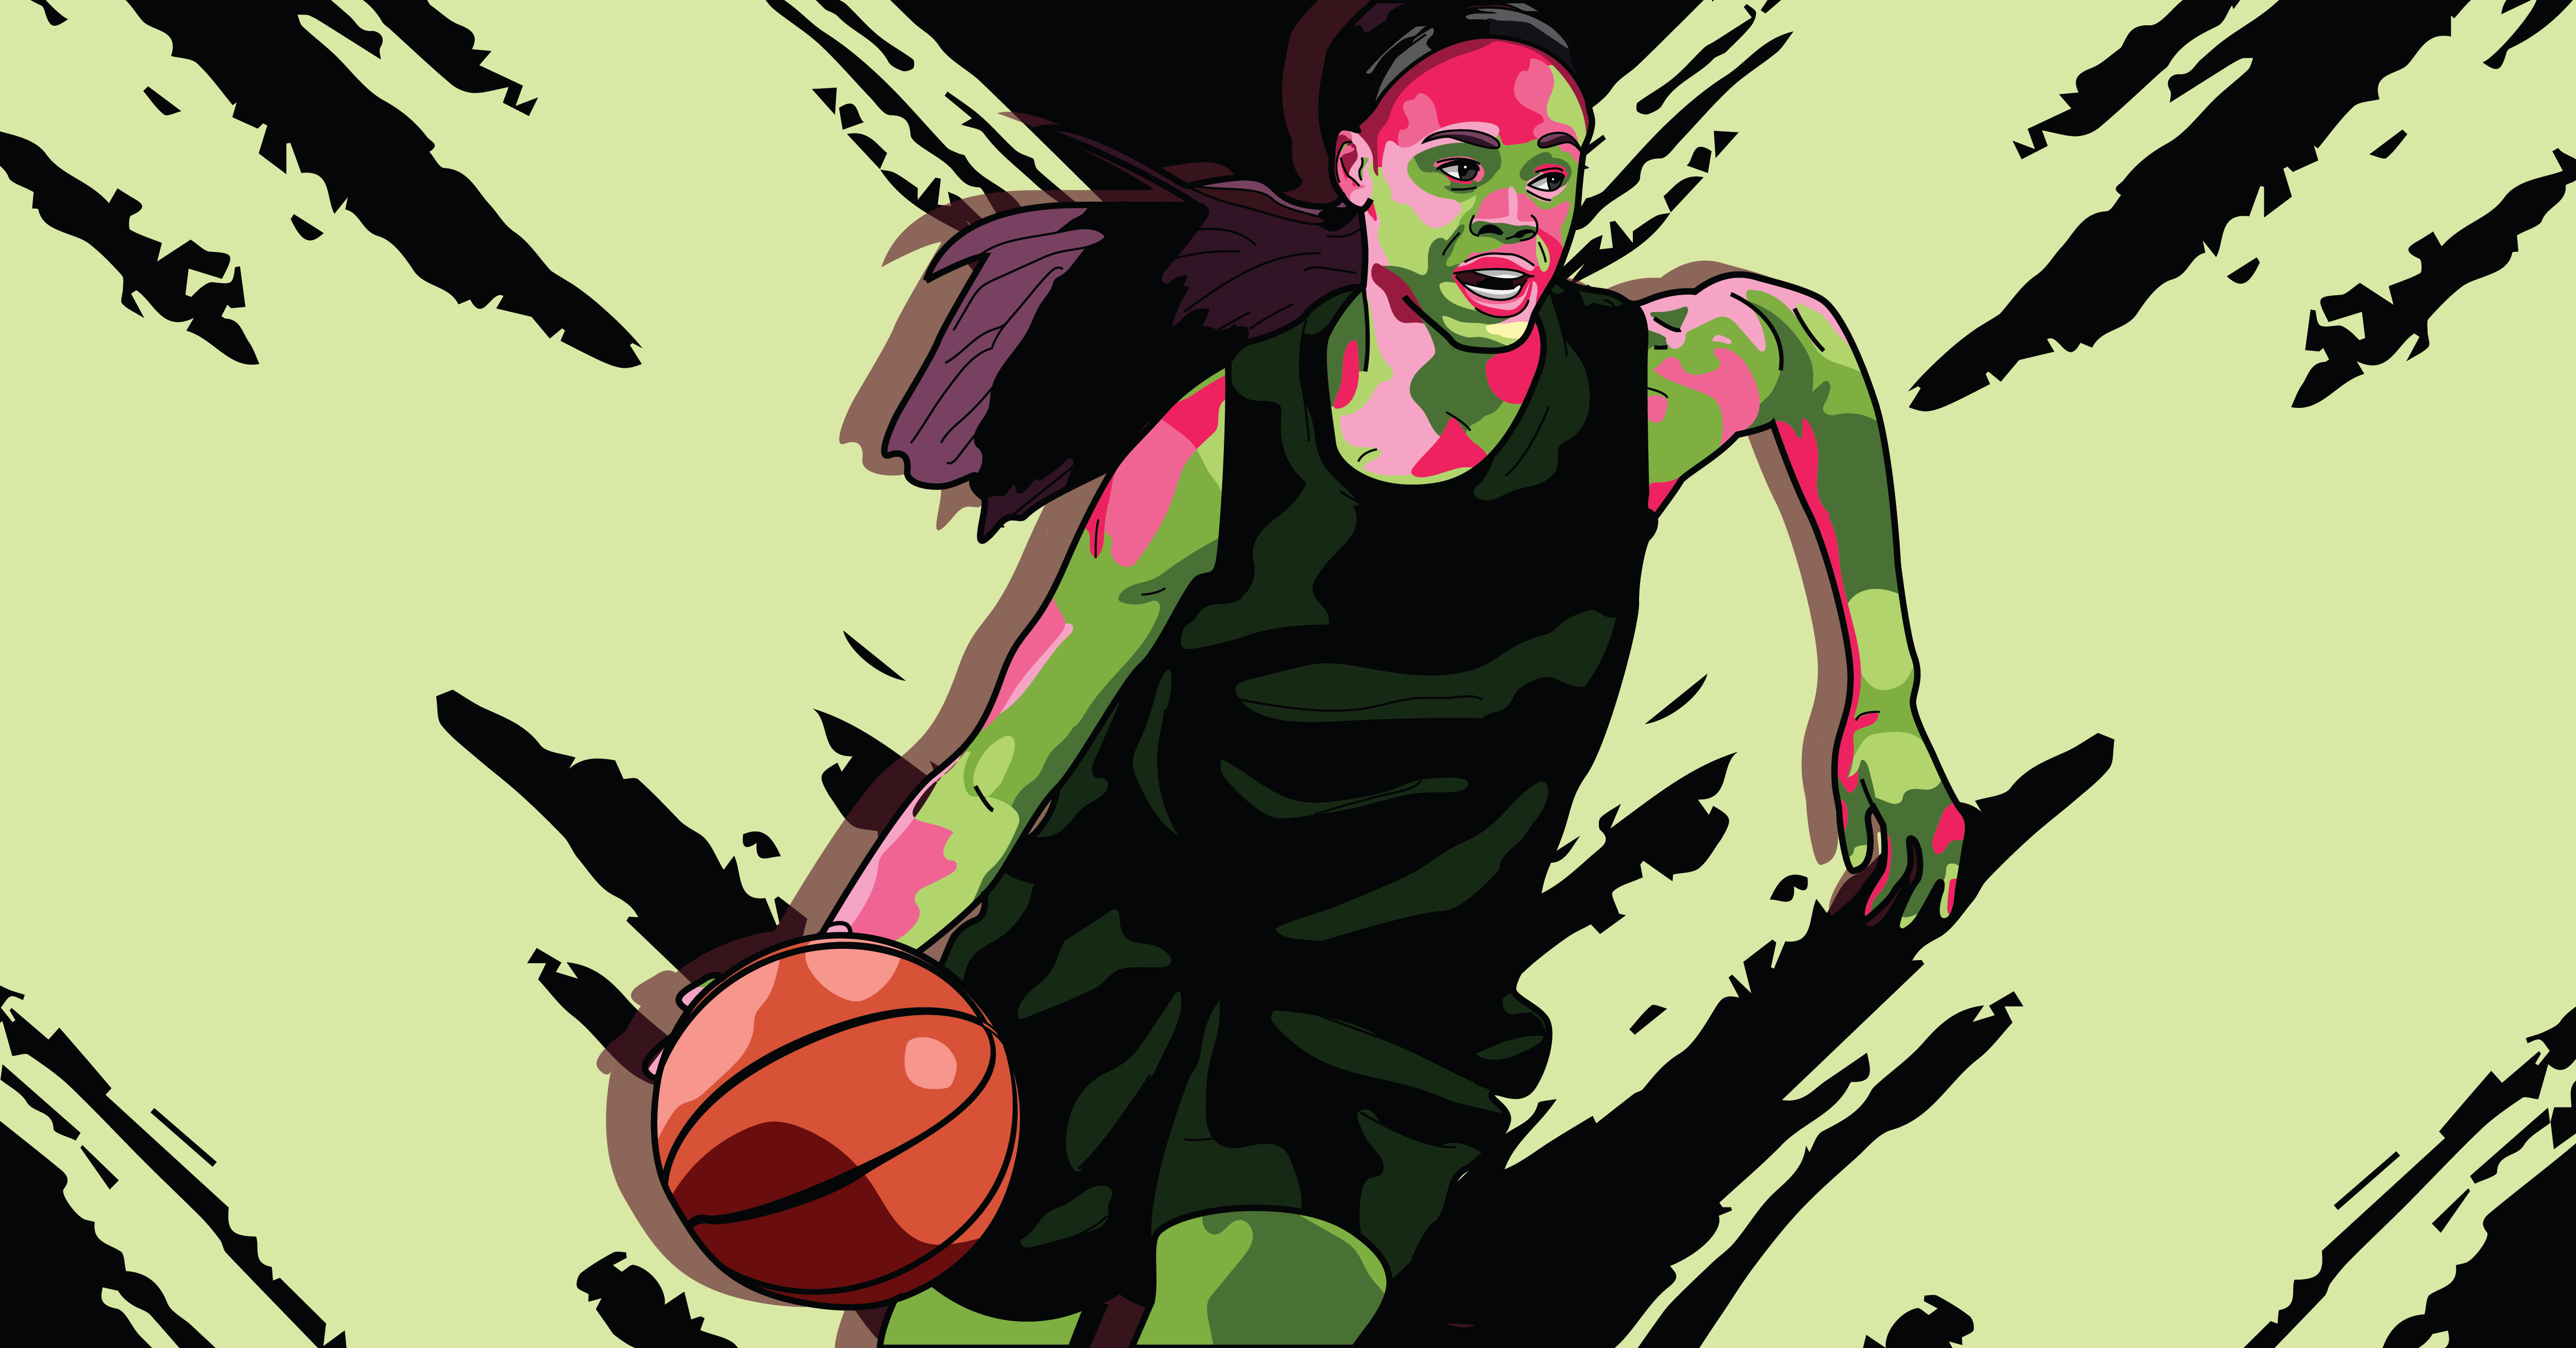 WNBA Quotes: 31 Inspirational Insights